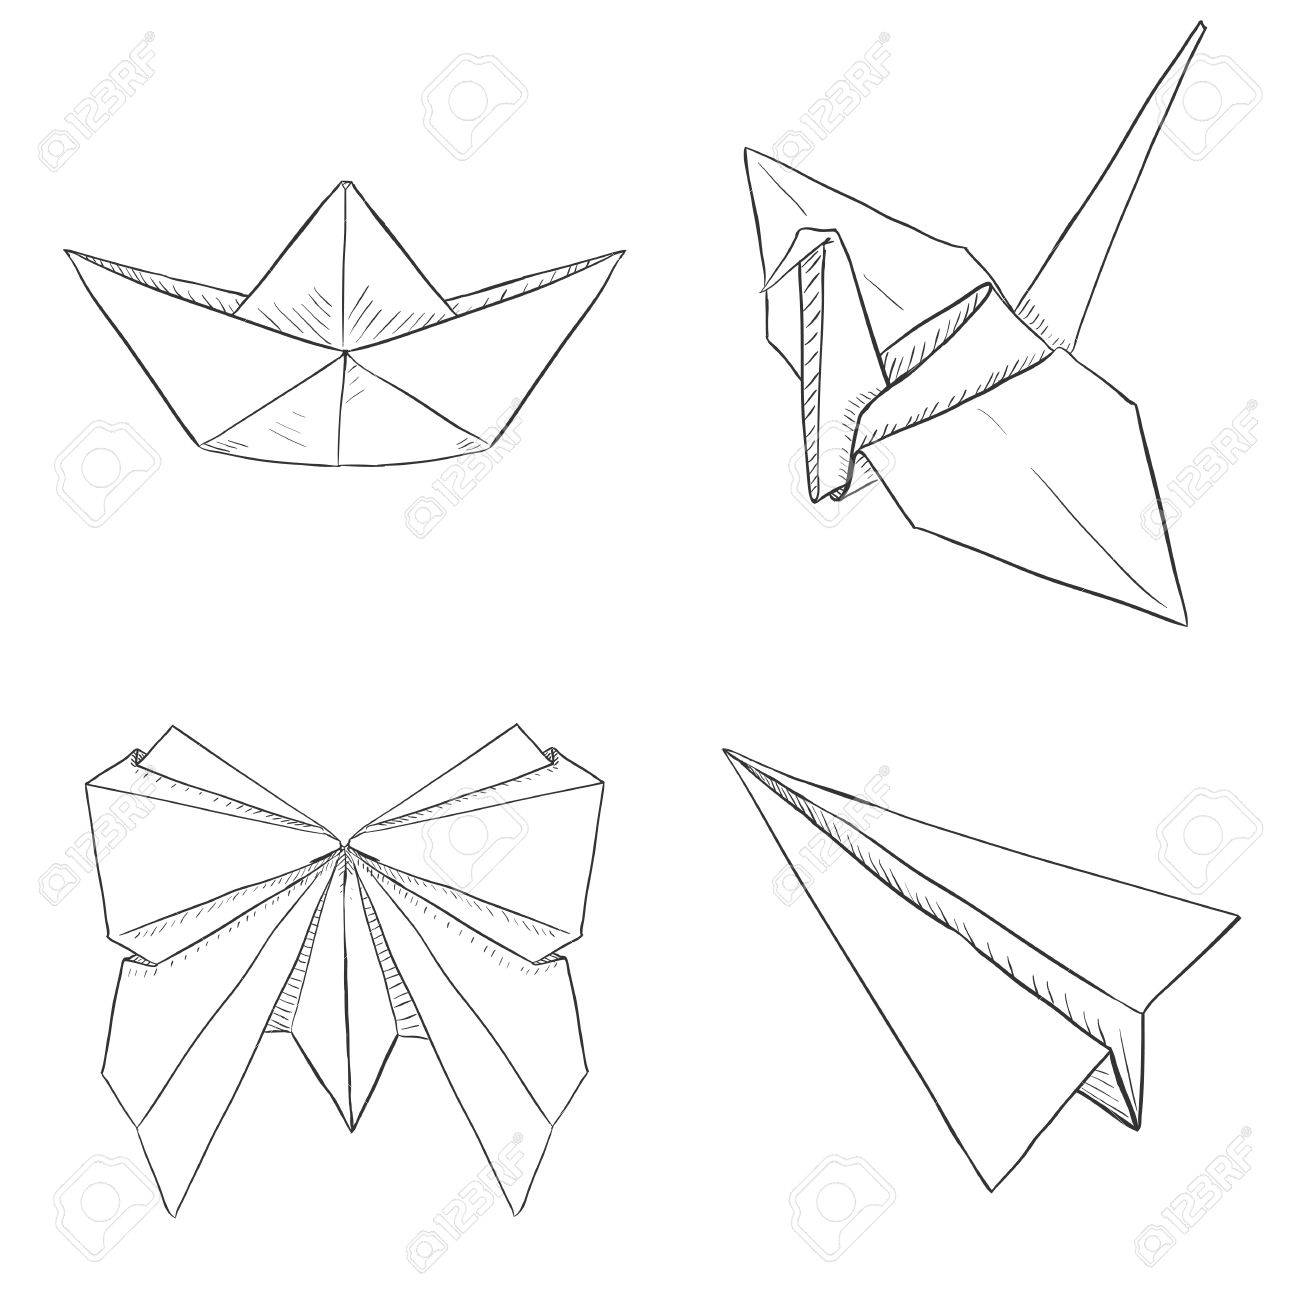 Vector Set Of Origami Objects Plane Boat Butterfly Crane On White Background